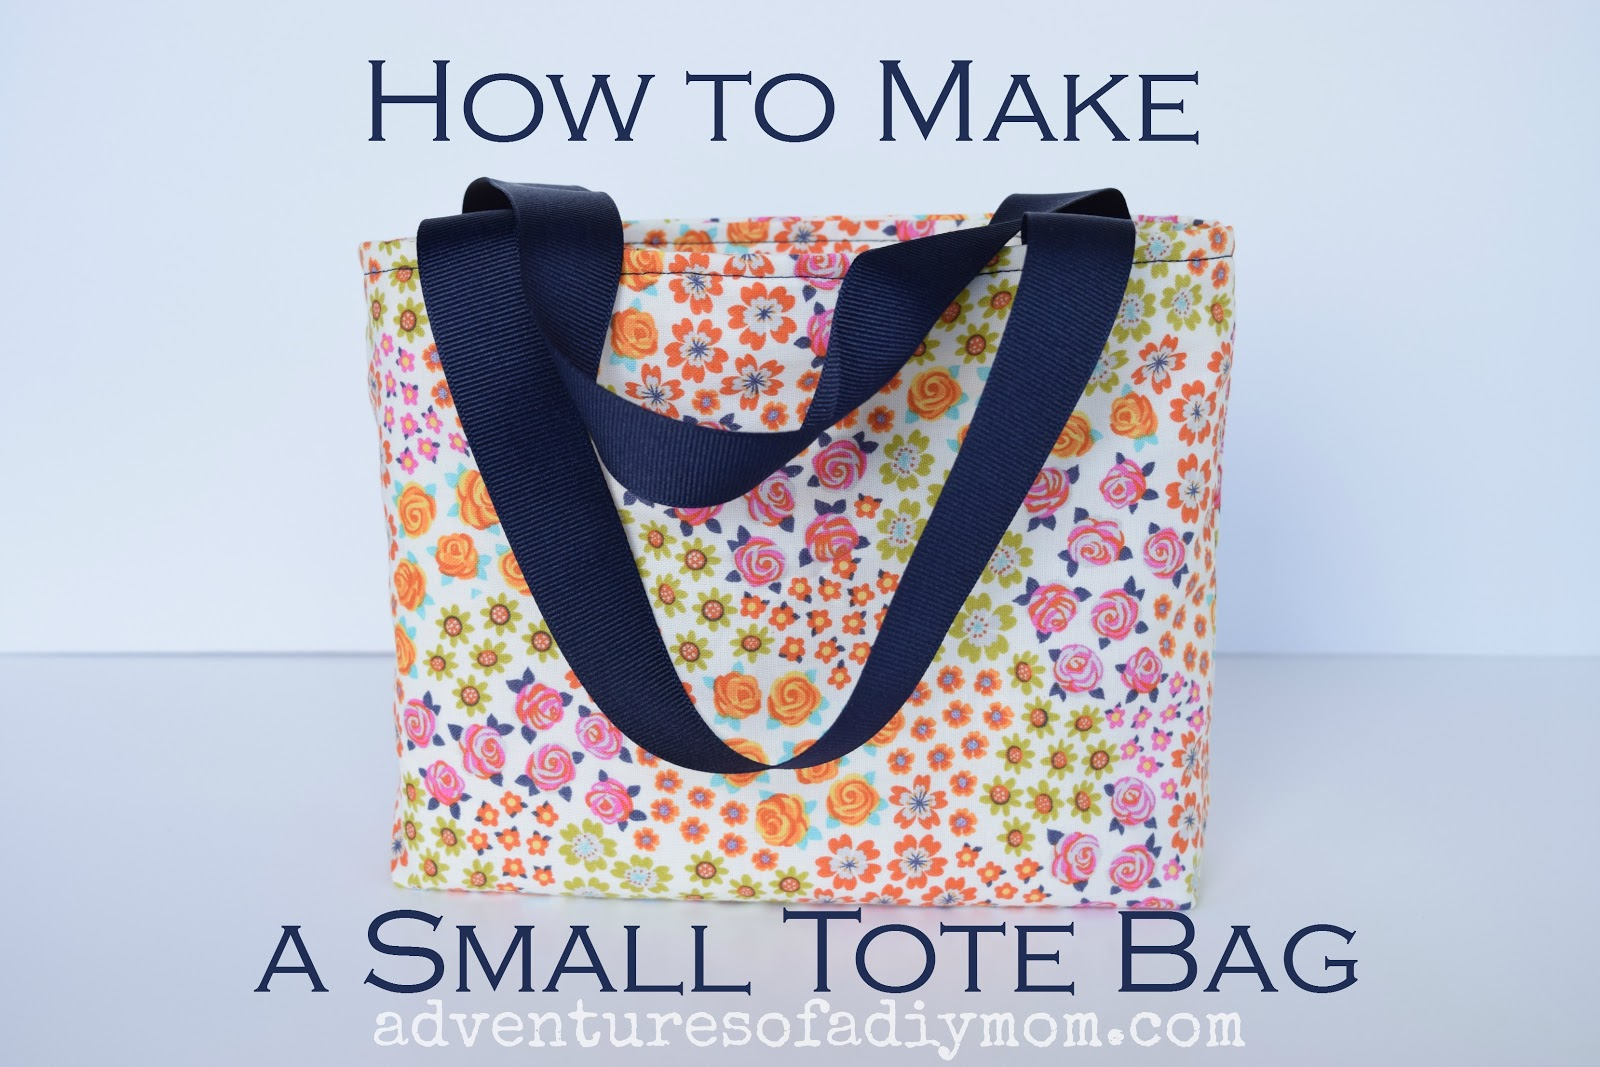 How to Make a Small DIY Tote Bag - Adventures of a DIY Mom